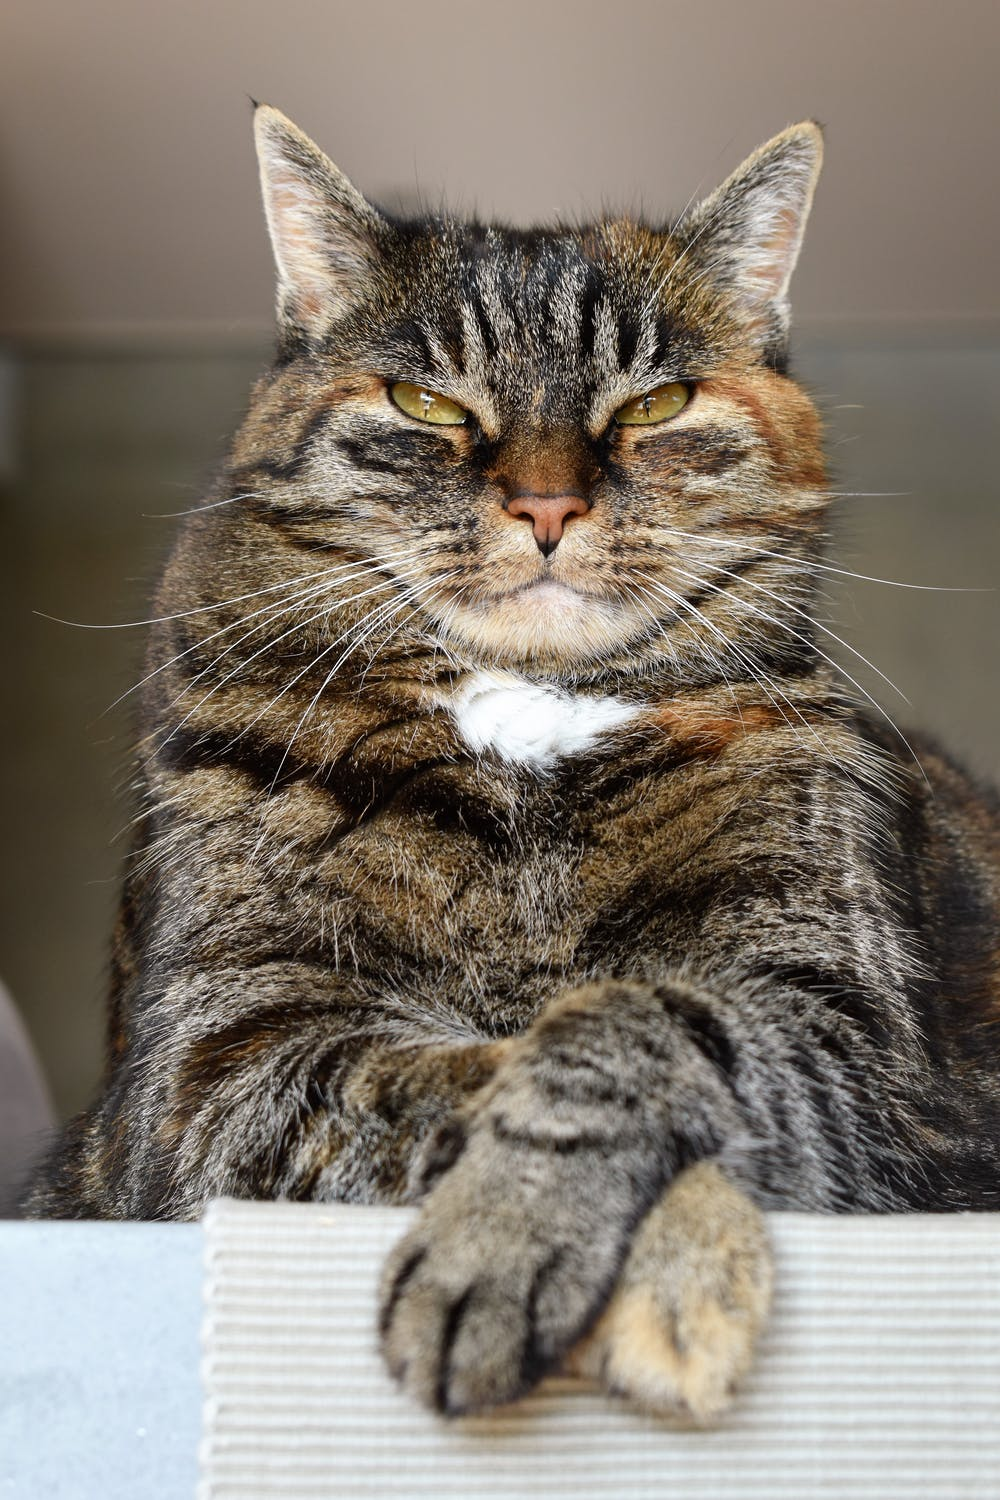 Signs that cats are angry